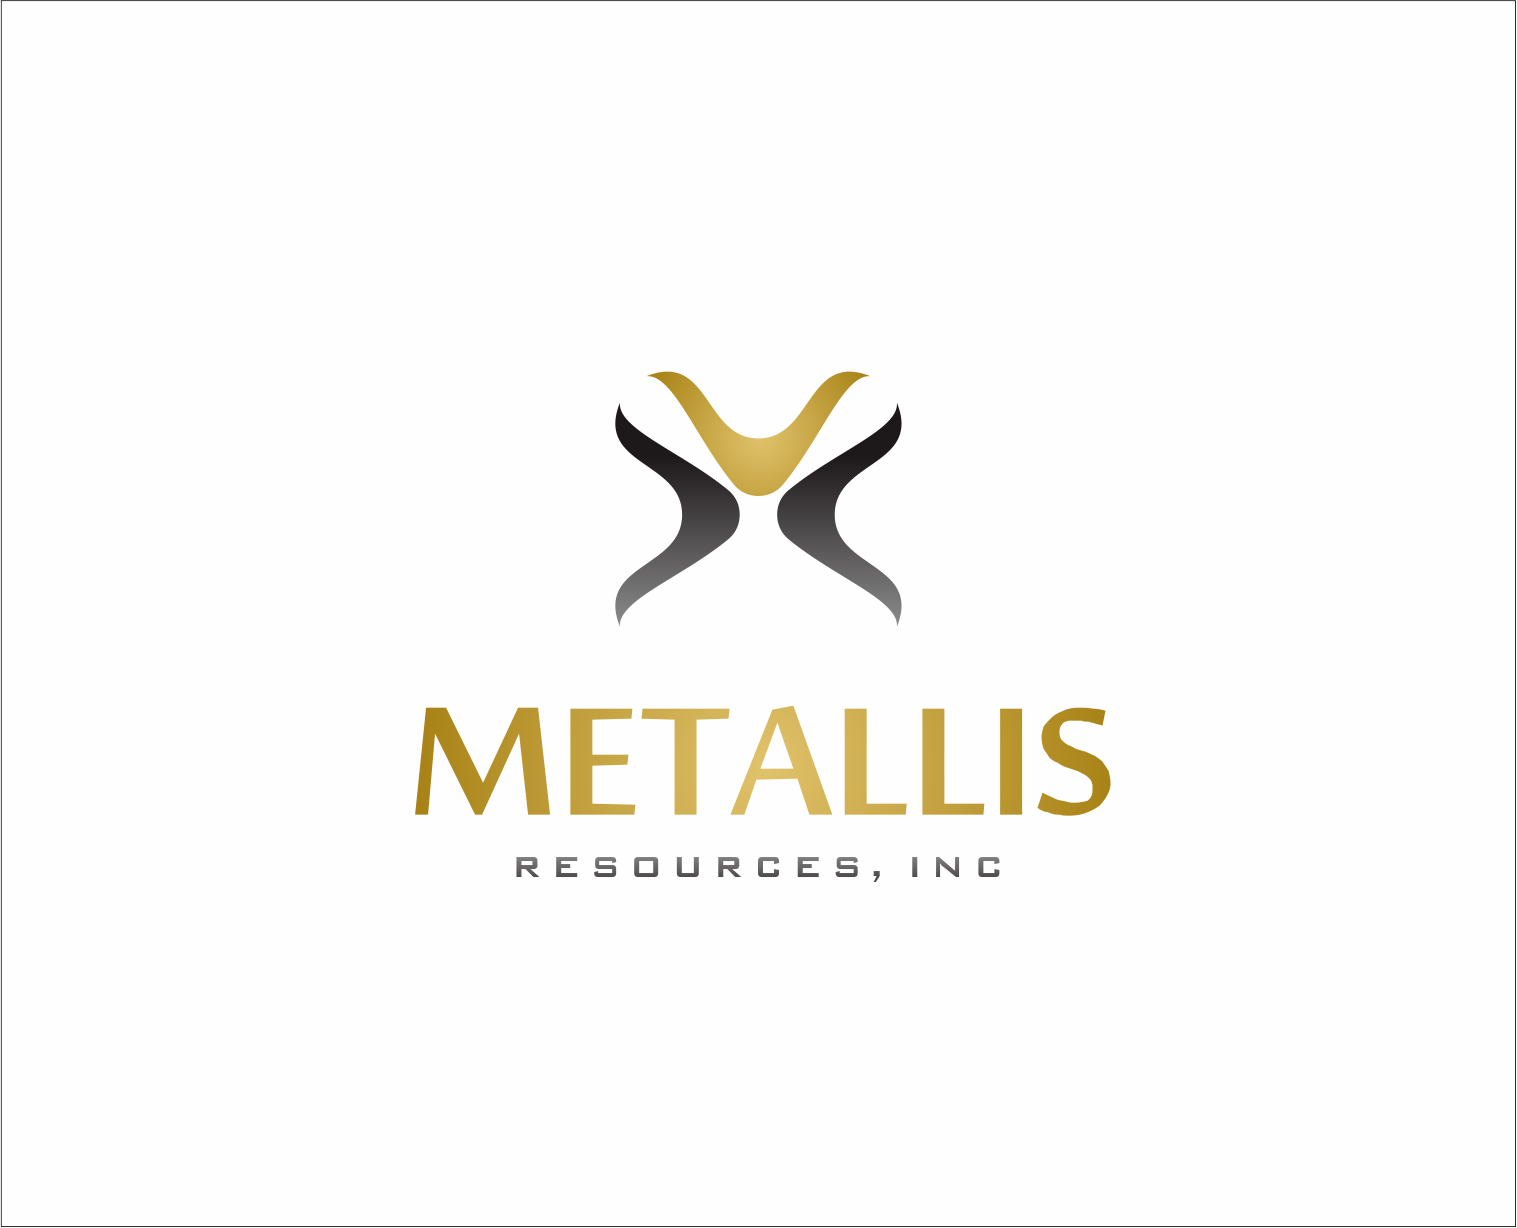 Logo Design by Armada Jamaluddin - Entry No. 142 in the Logo Design Contest Metallis Resources Inc Logo Design.